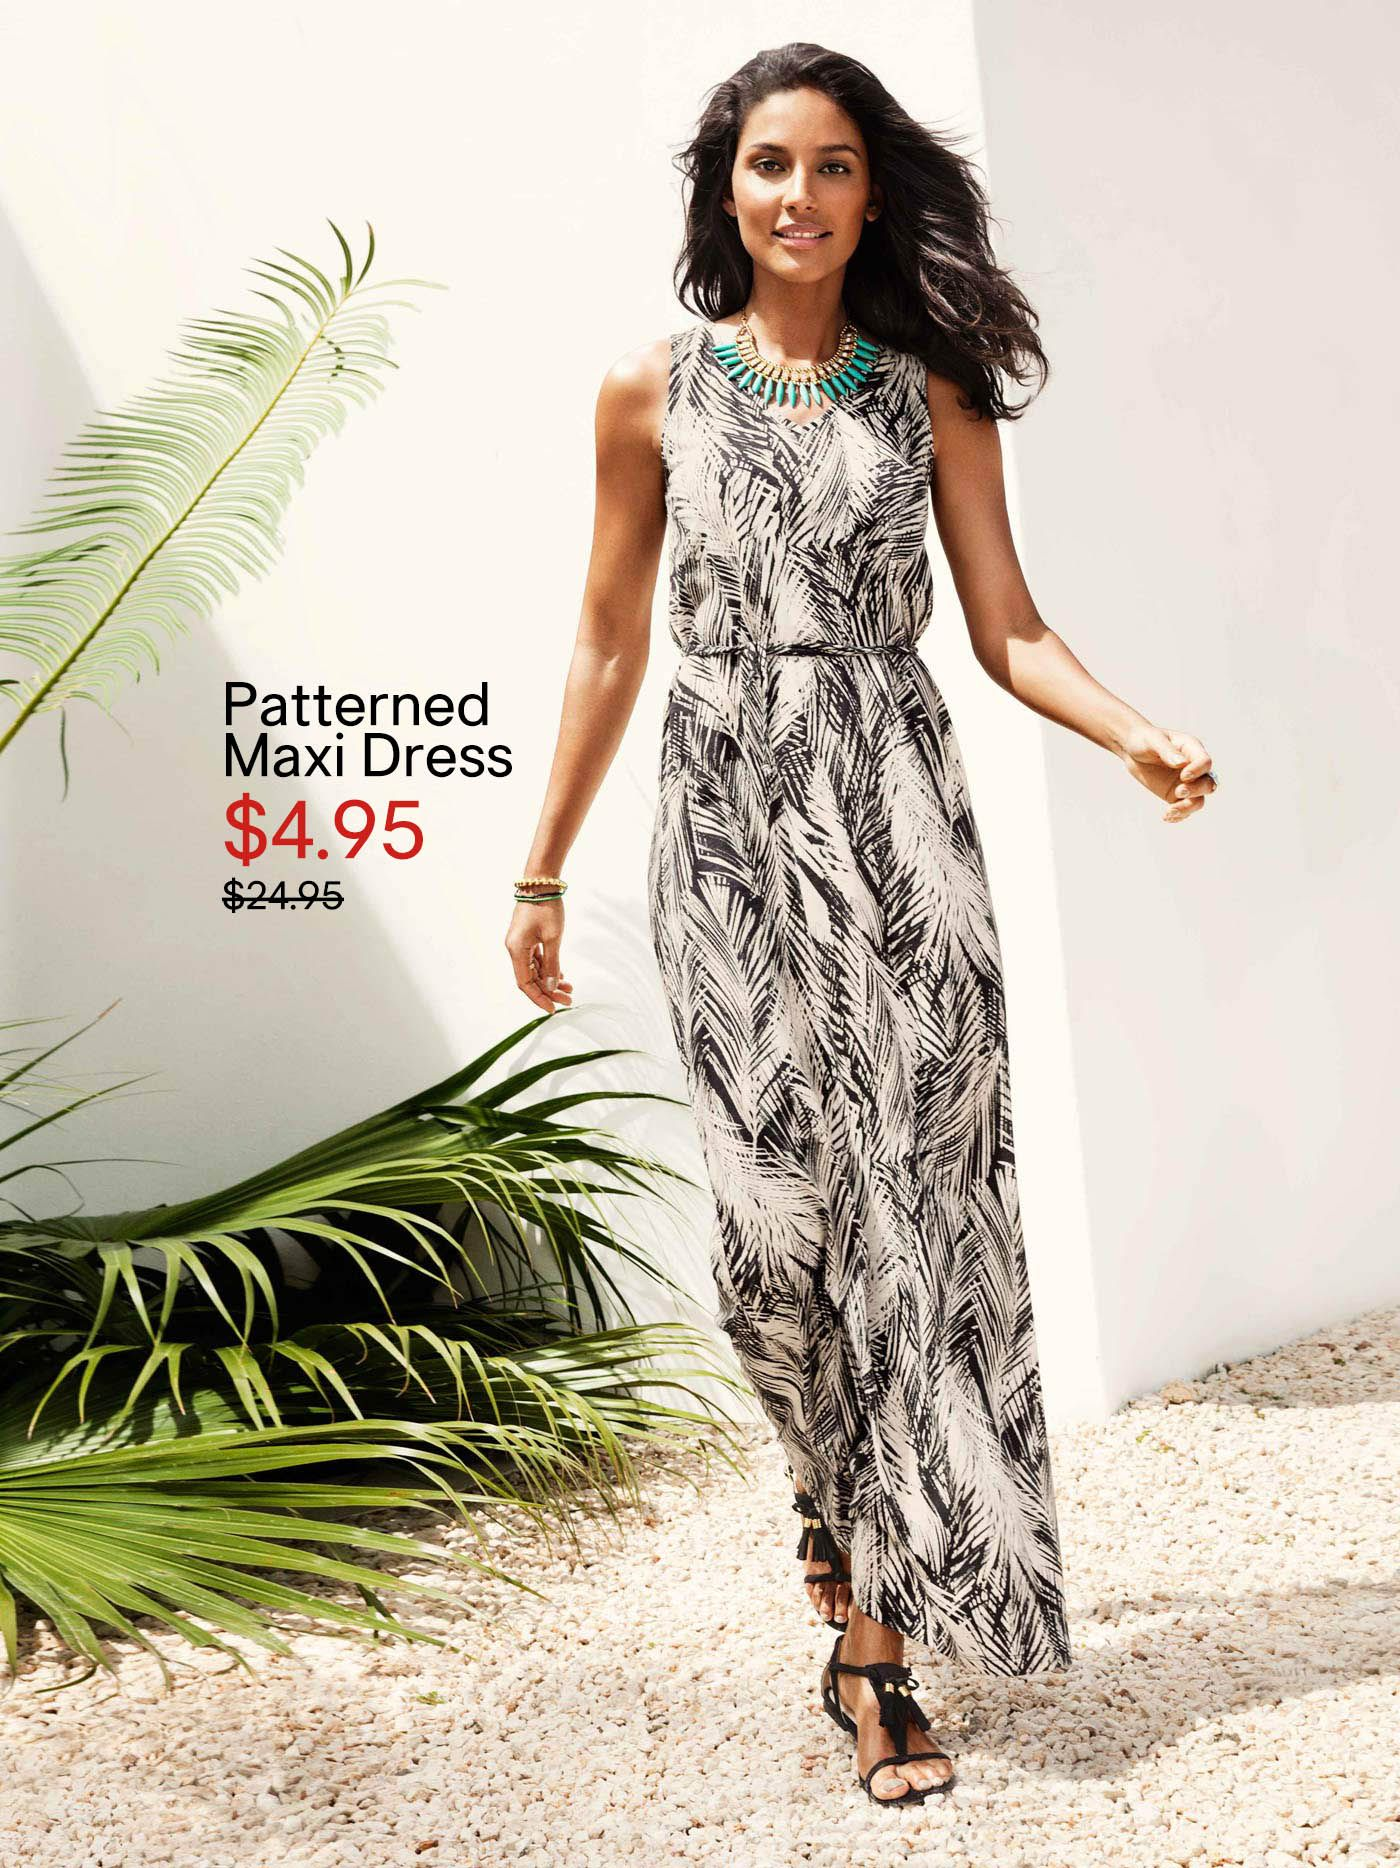 Pin by LVG on AD | Women2 | Maxi dress pattern, Maxi dress